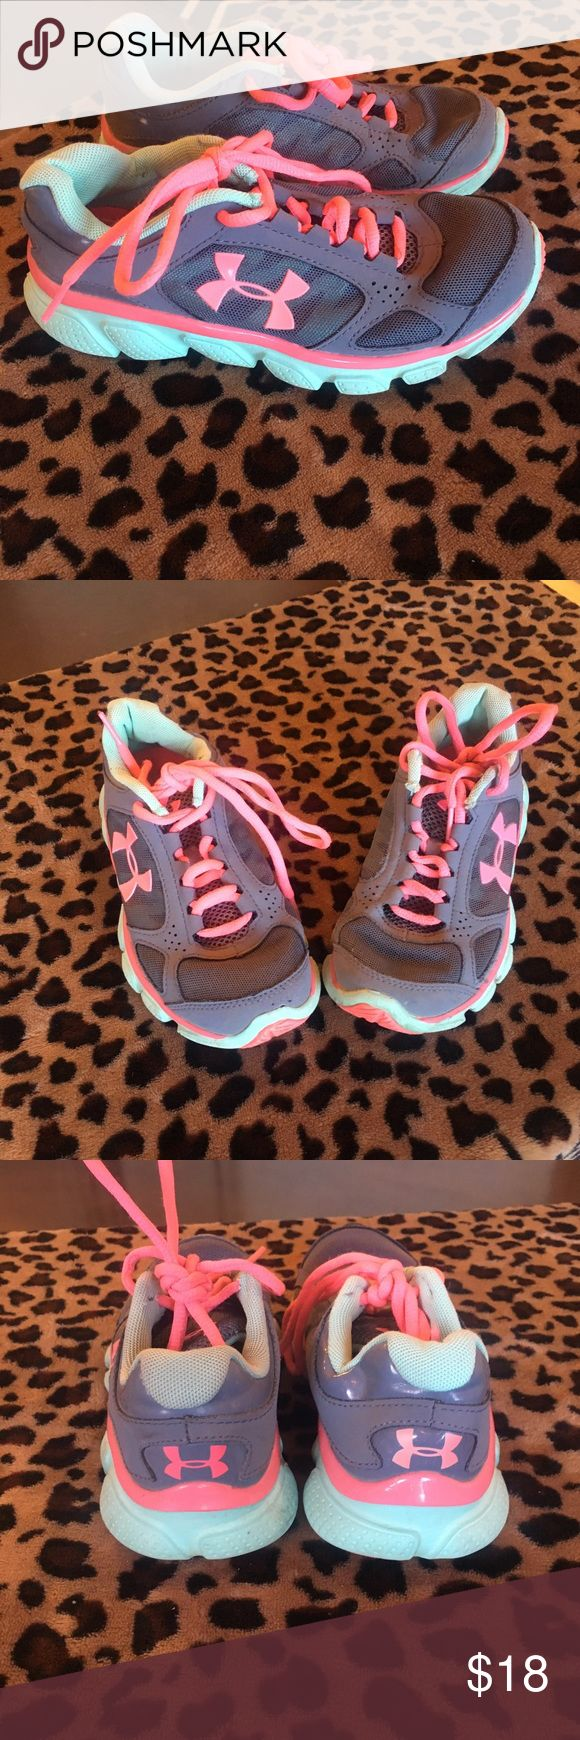 Under Armour girls tennis shoes size 1 Under Armour girls shoes size 1. Been worn and washed they are in good condition. Under Armour Shoes Sneakers